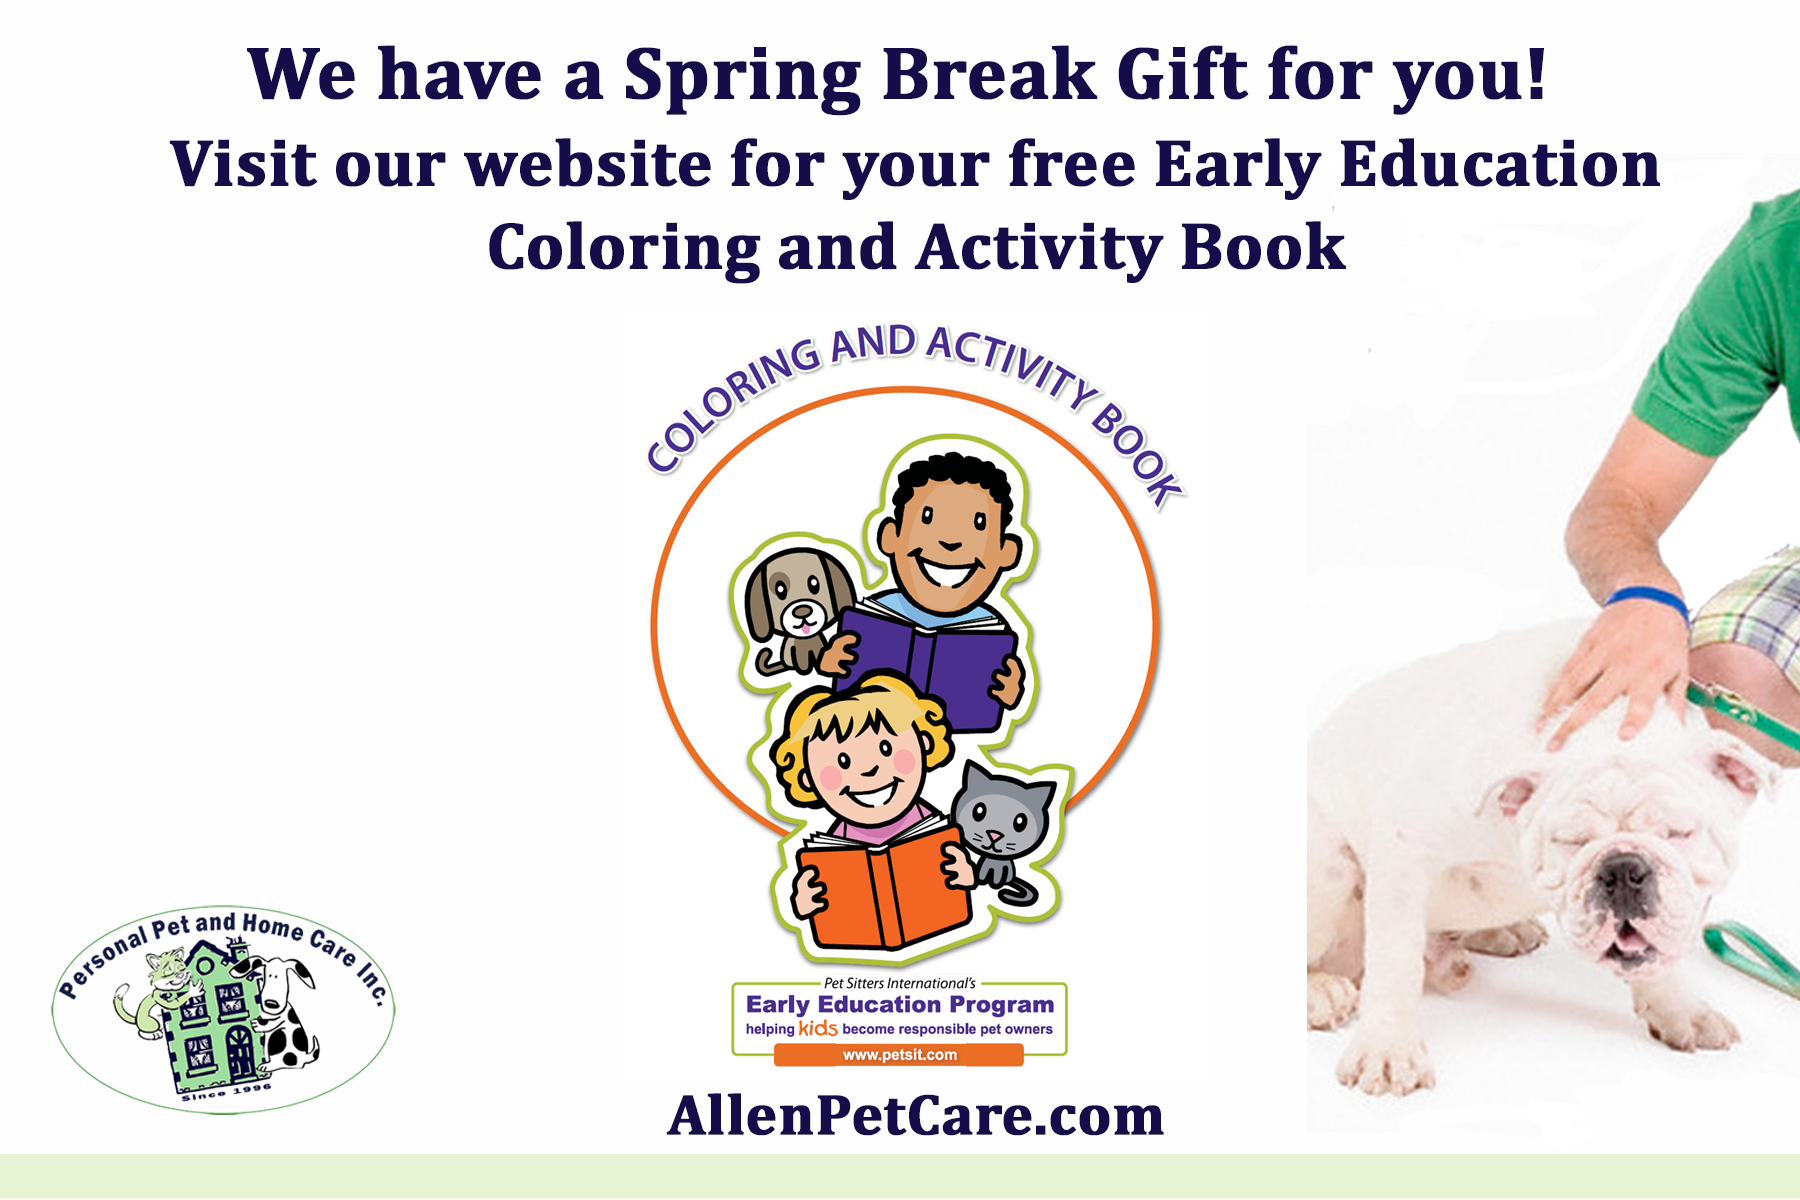 Activity Book from AllenPetCare.com